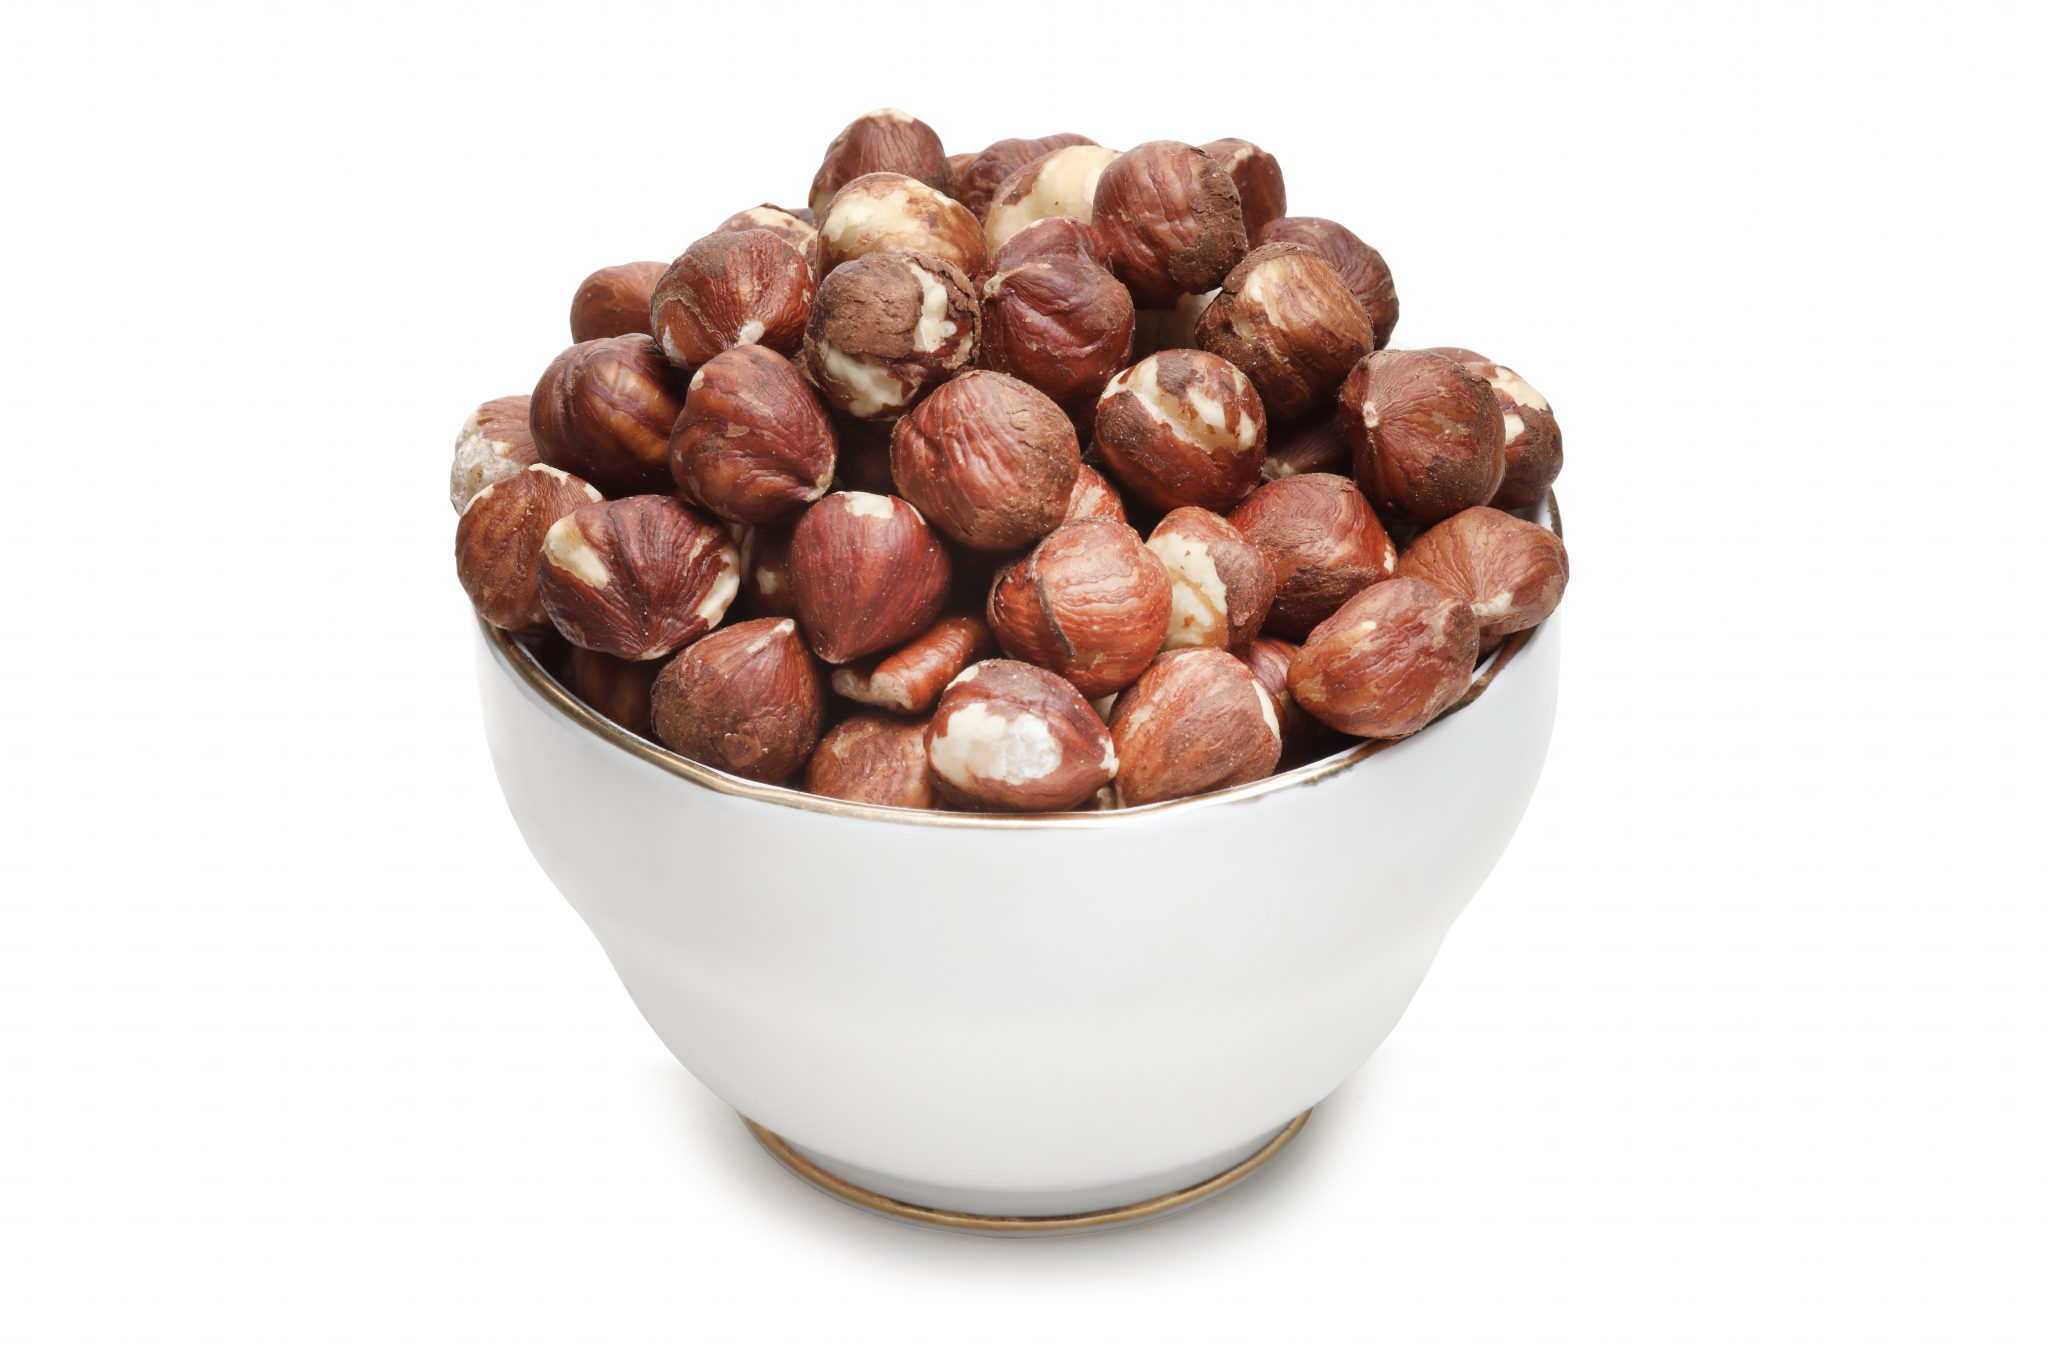 Chandras healthy vegan snack hazelnuts in a glass bowl